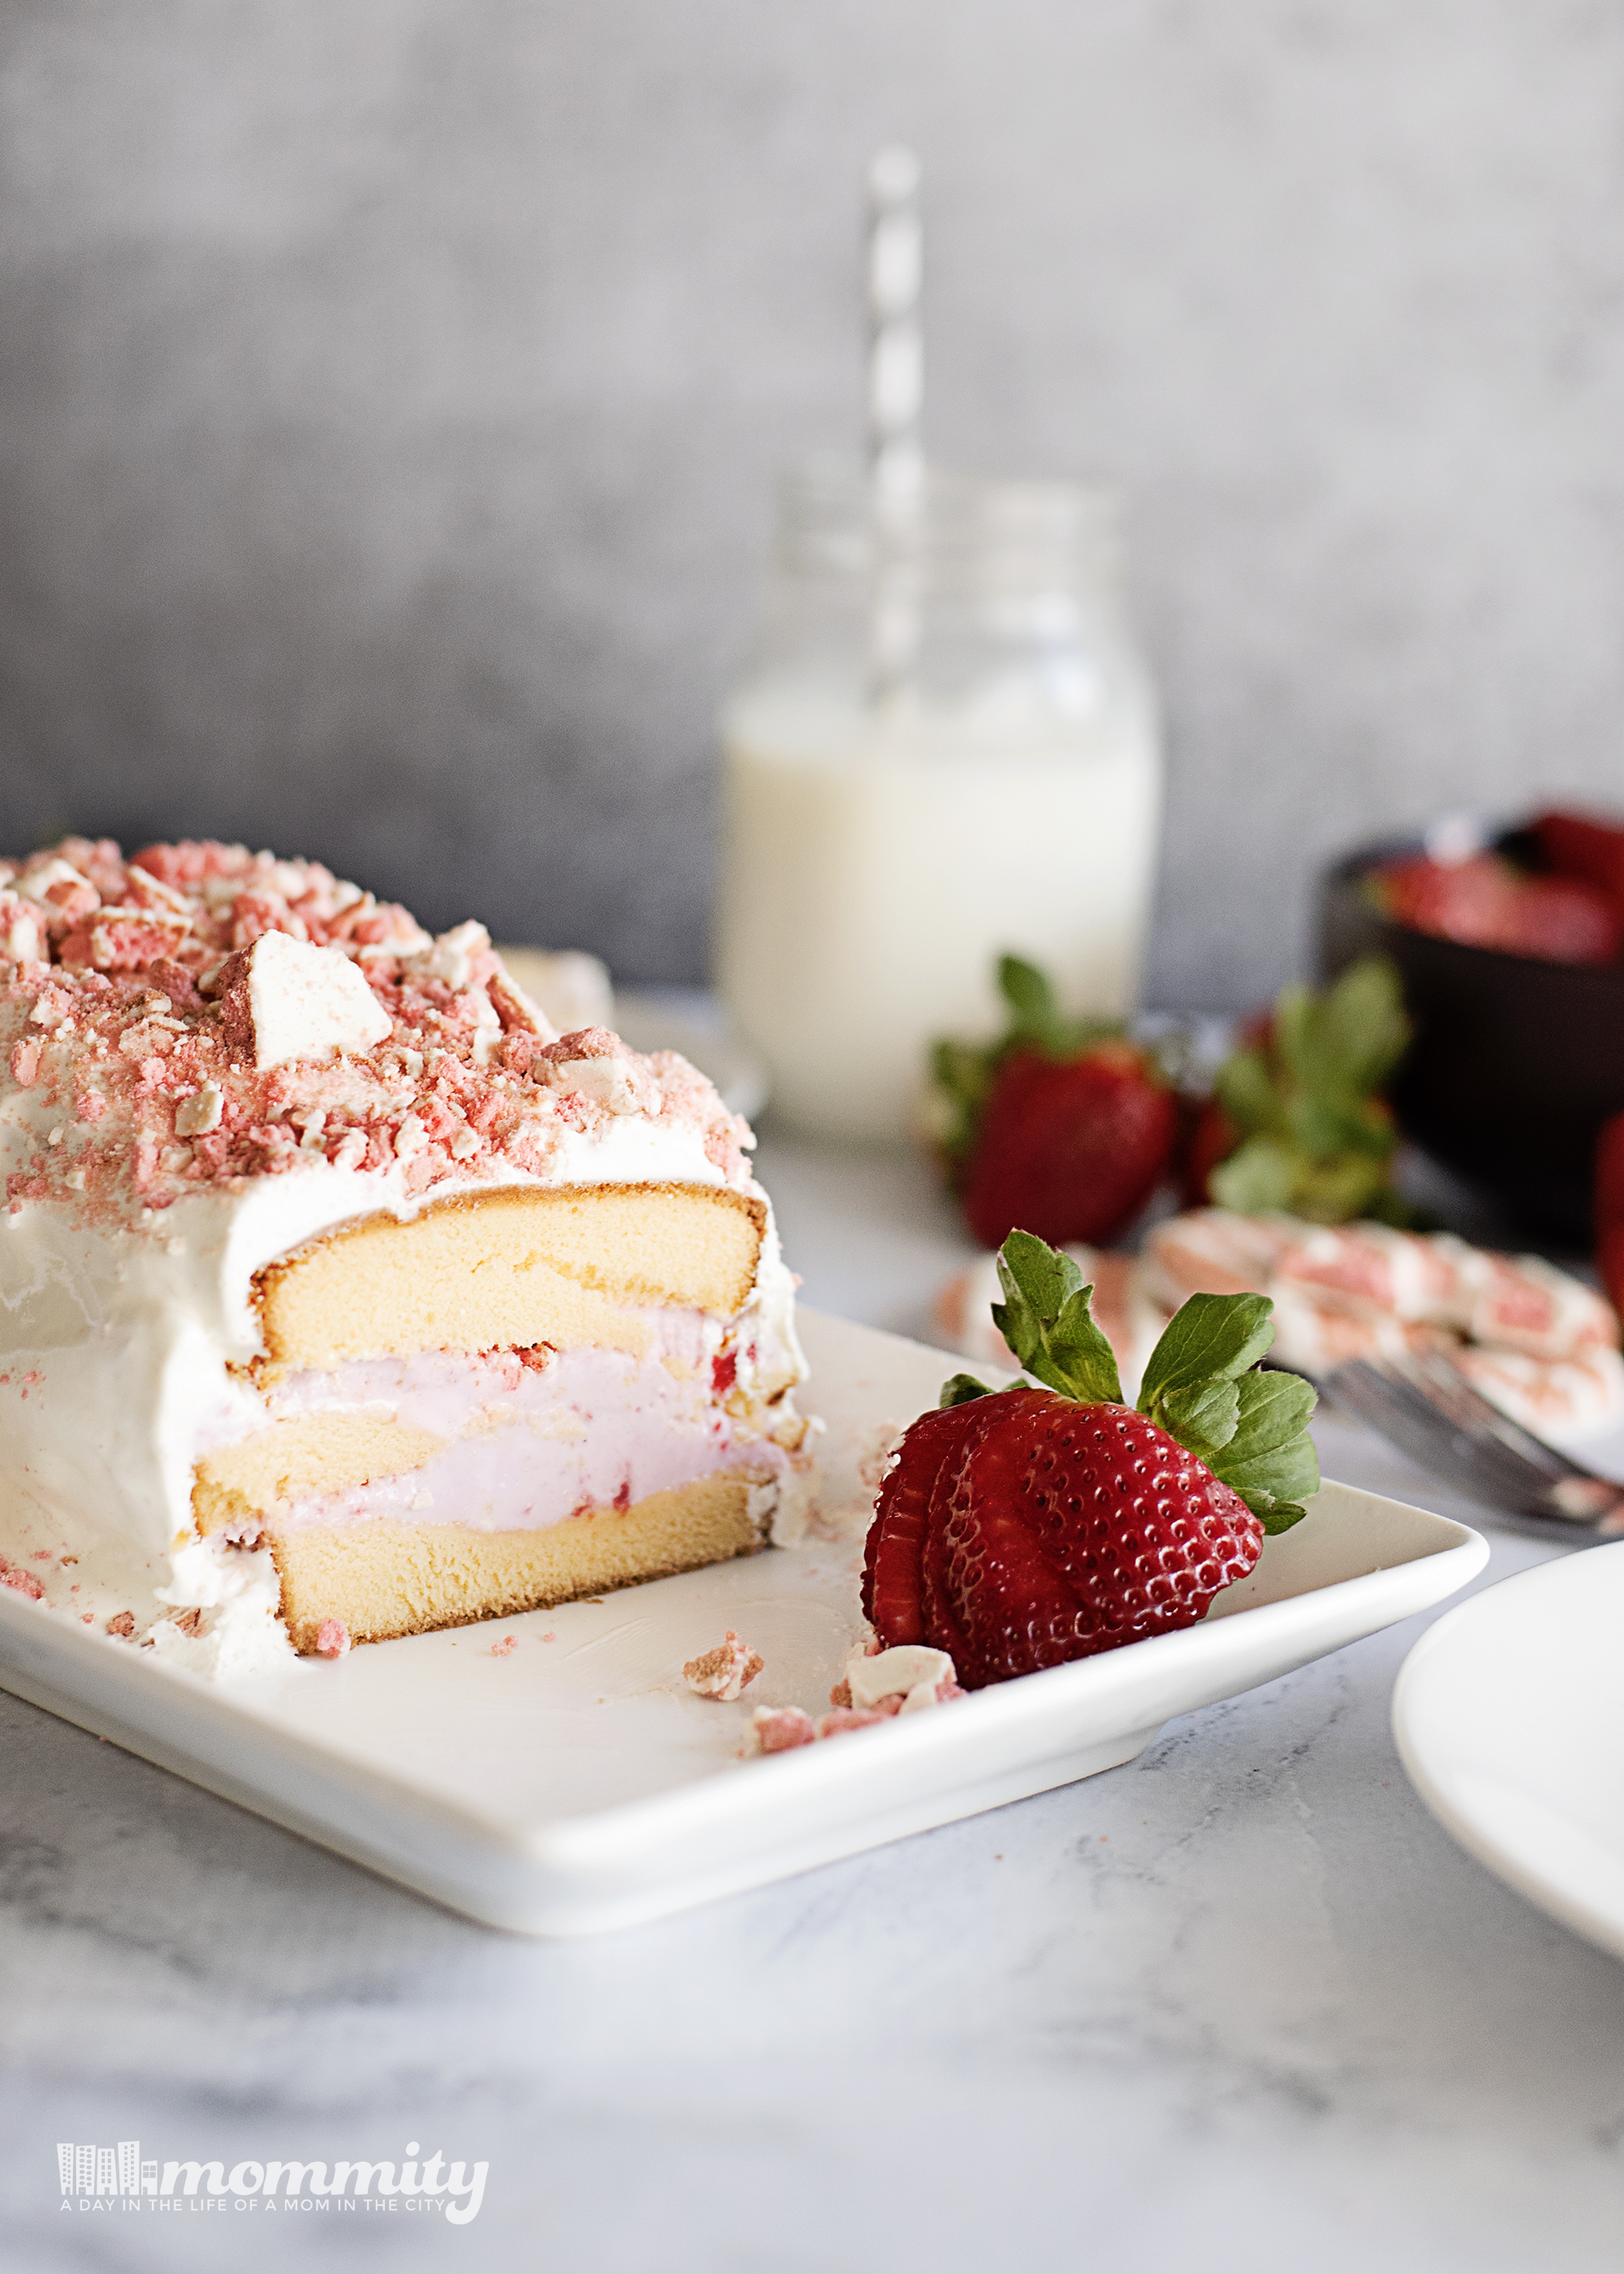 Strawberry Shortcake Ice Cream Cake Recipe Quick and Easy